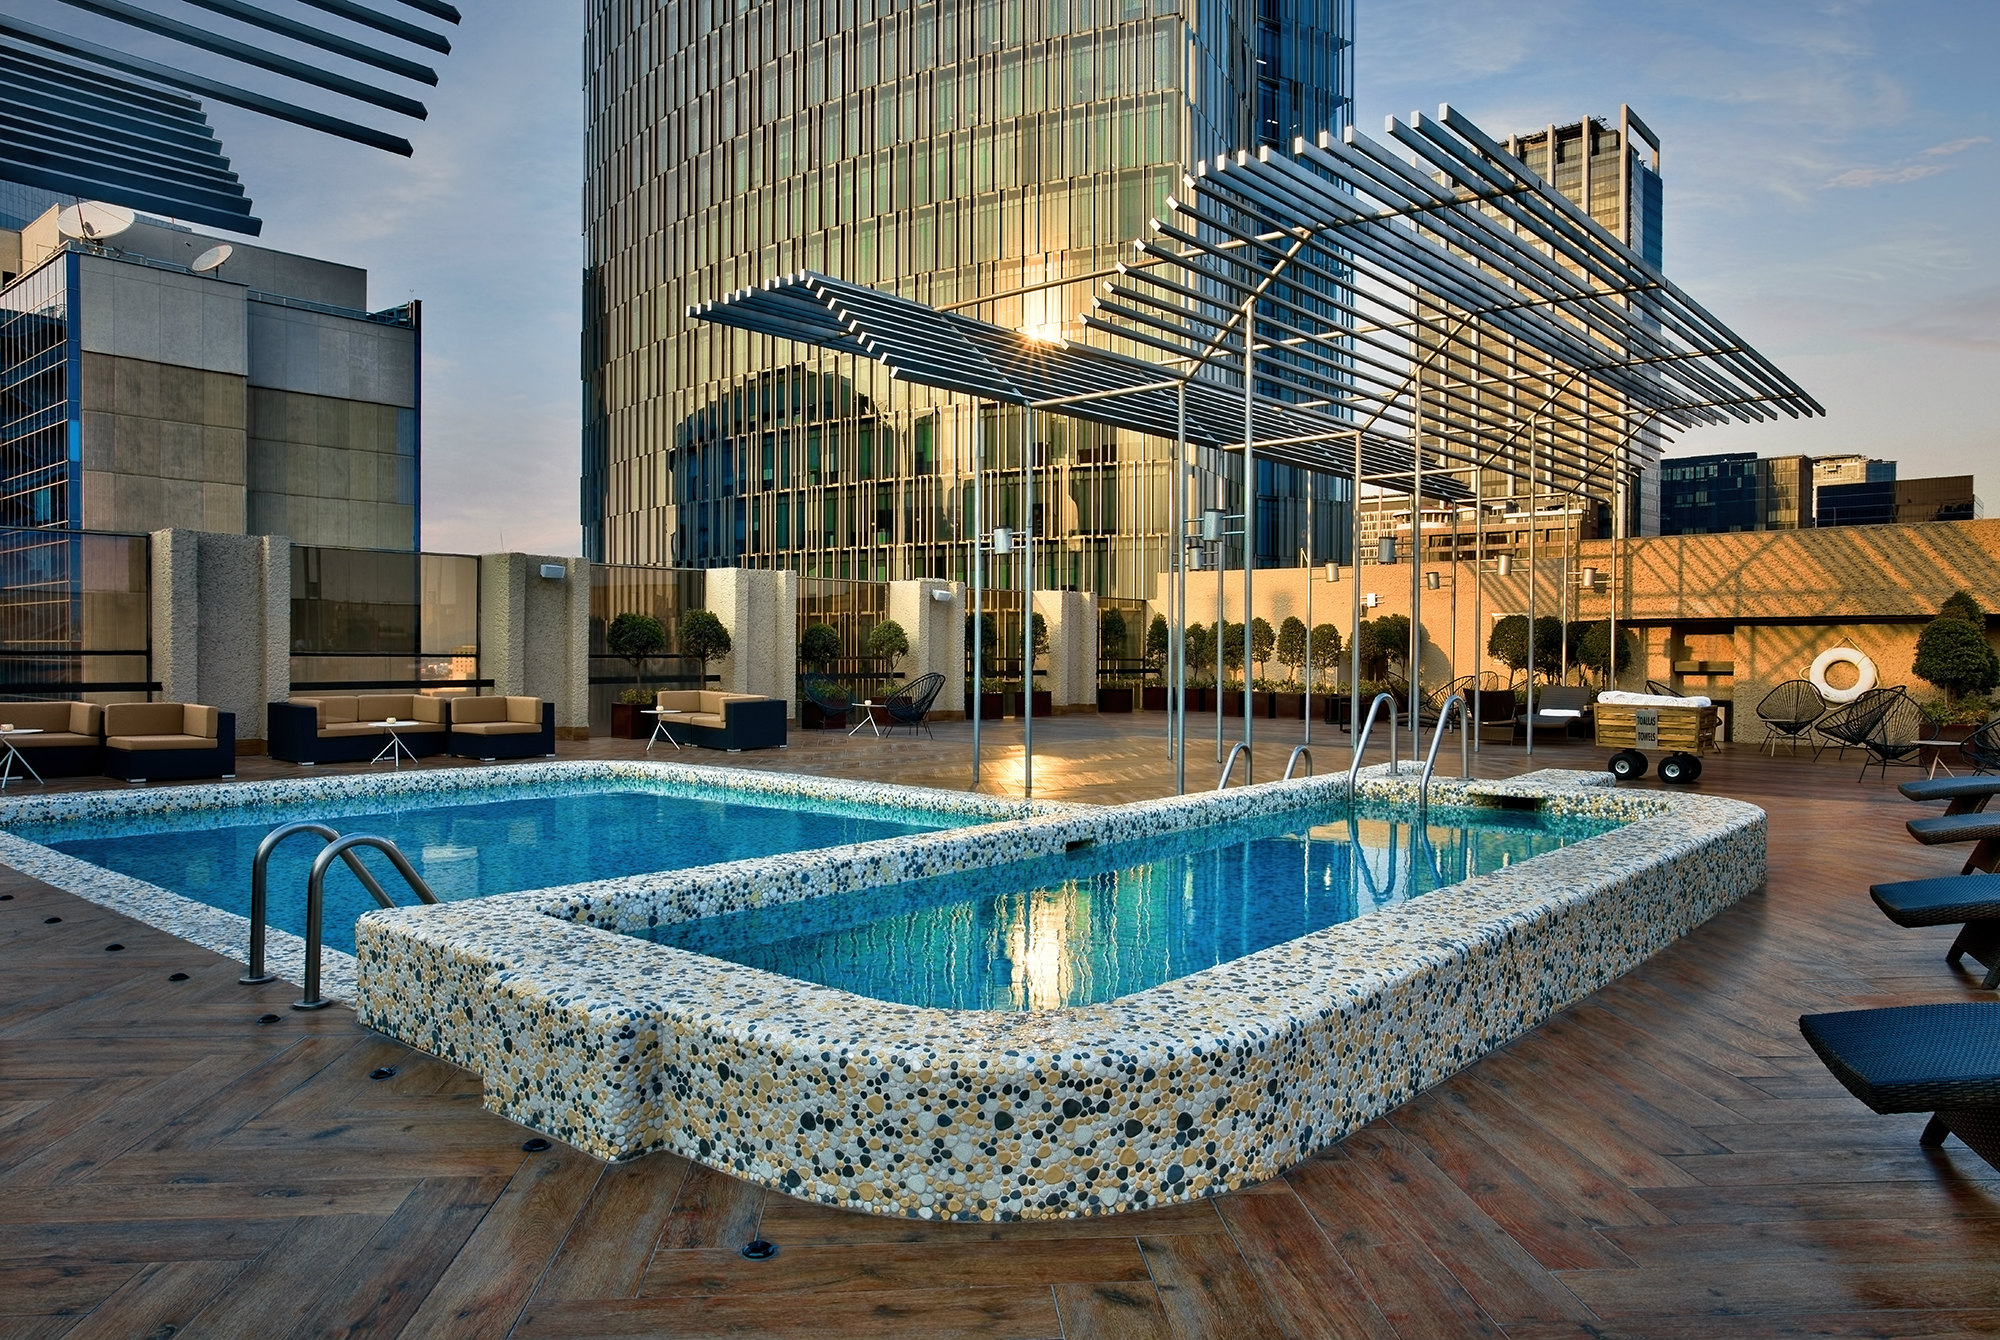 Pool at Galeria Plaza Reforma Hotel